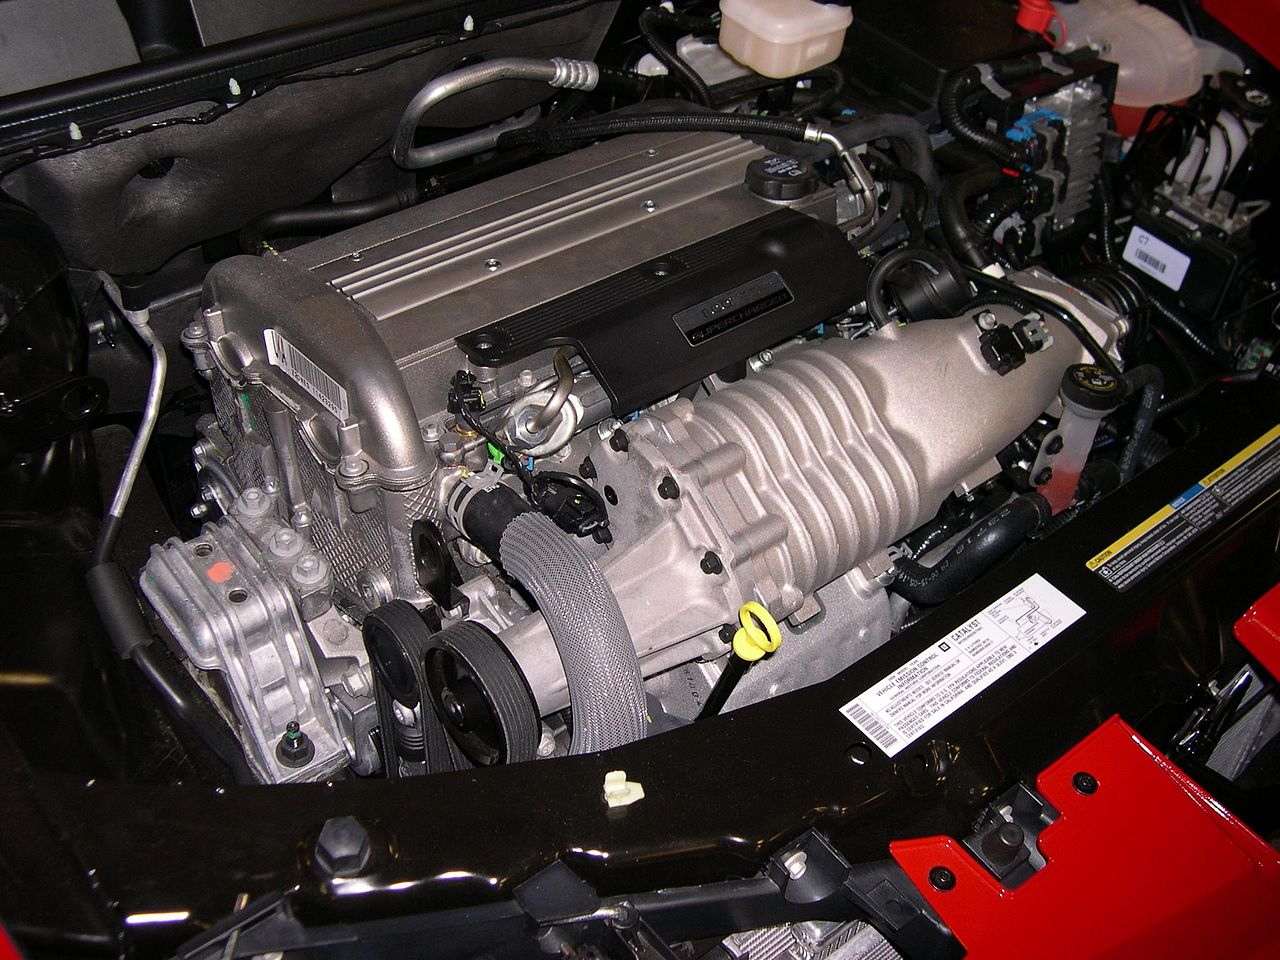 File:2006 Saturn Ion Red Line engine.jpg